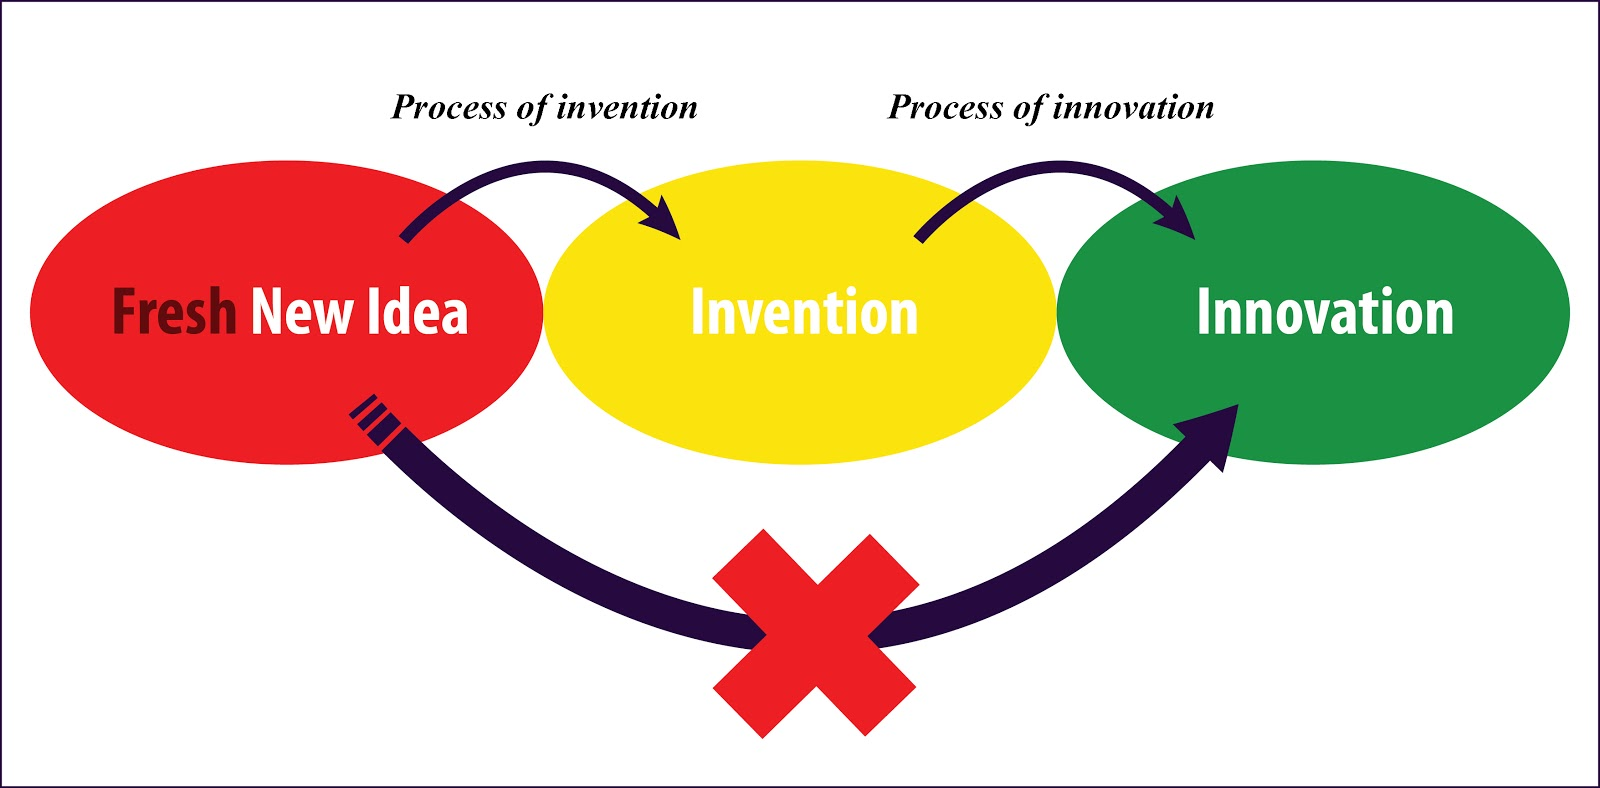 invention process An invention is a unique or novel device, method, composition or processthe invention process is a process within an overall engineering and product development process it may be an improvement upon a machine or product or a new process for creating an object or a result.